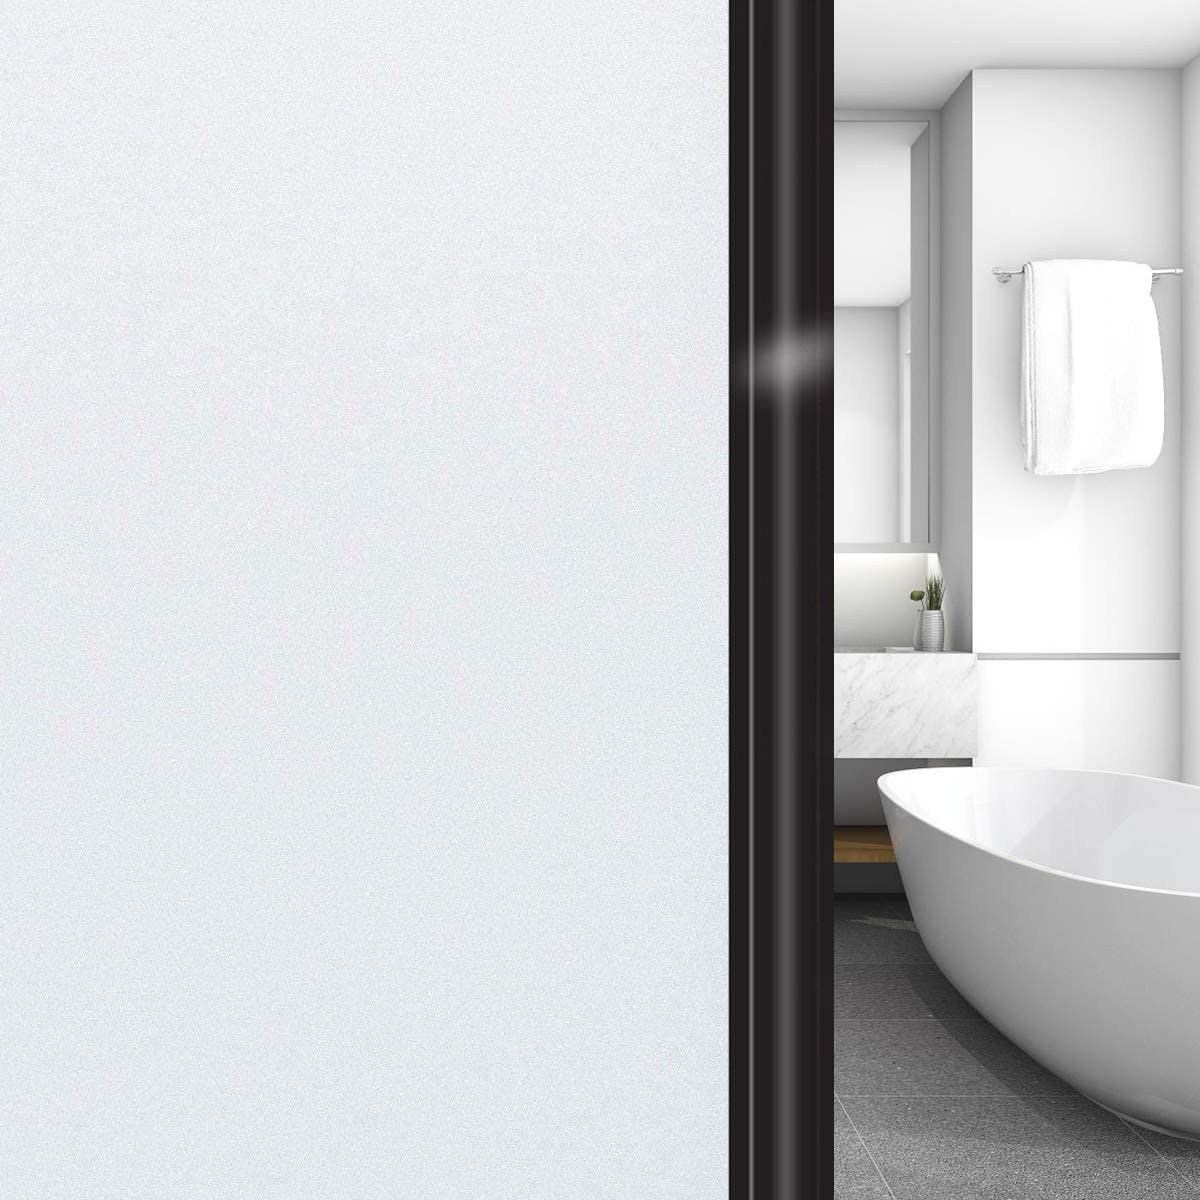 Privacy Blackout Window Glass Film No Glue(35.4 in x 32.8 Ft White ), Opaque Frosted Window Tint for Home, UV Blocking Heat Control Static Cling Non Adhesive for Bathroom Office Living Room